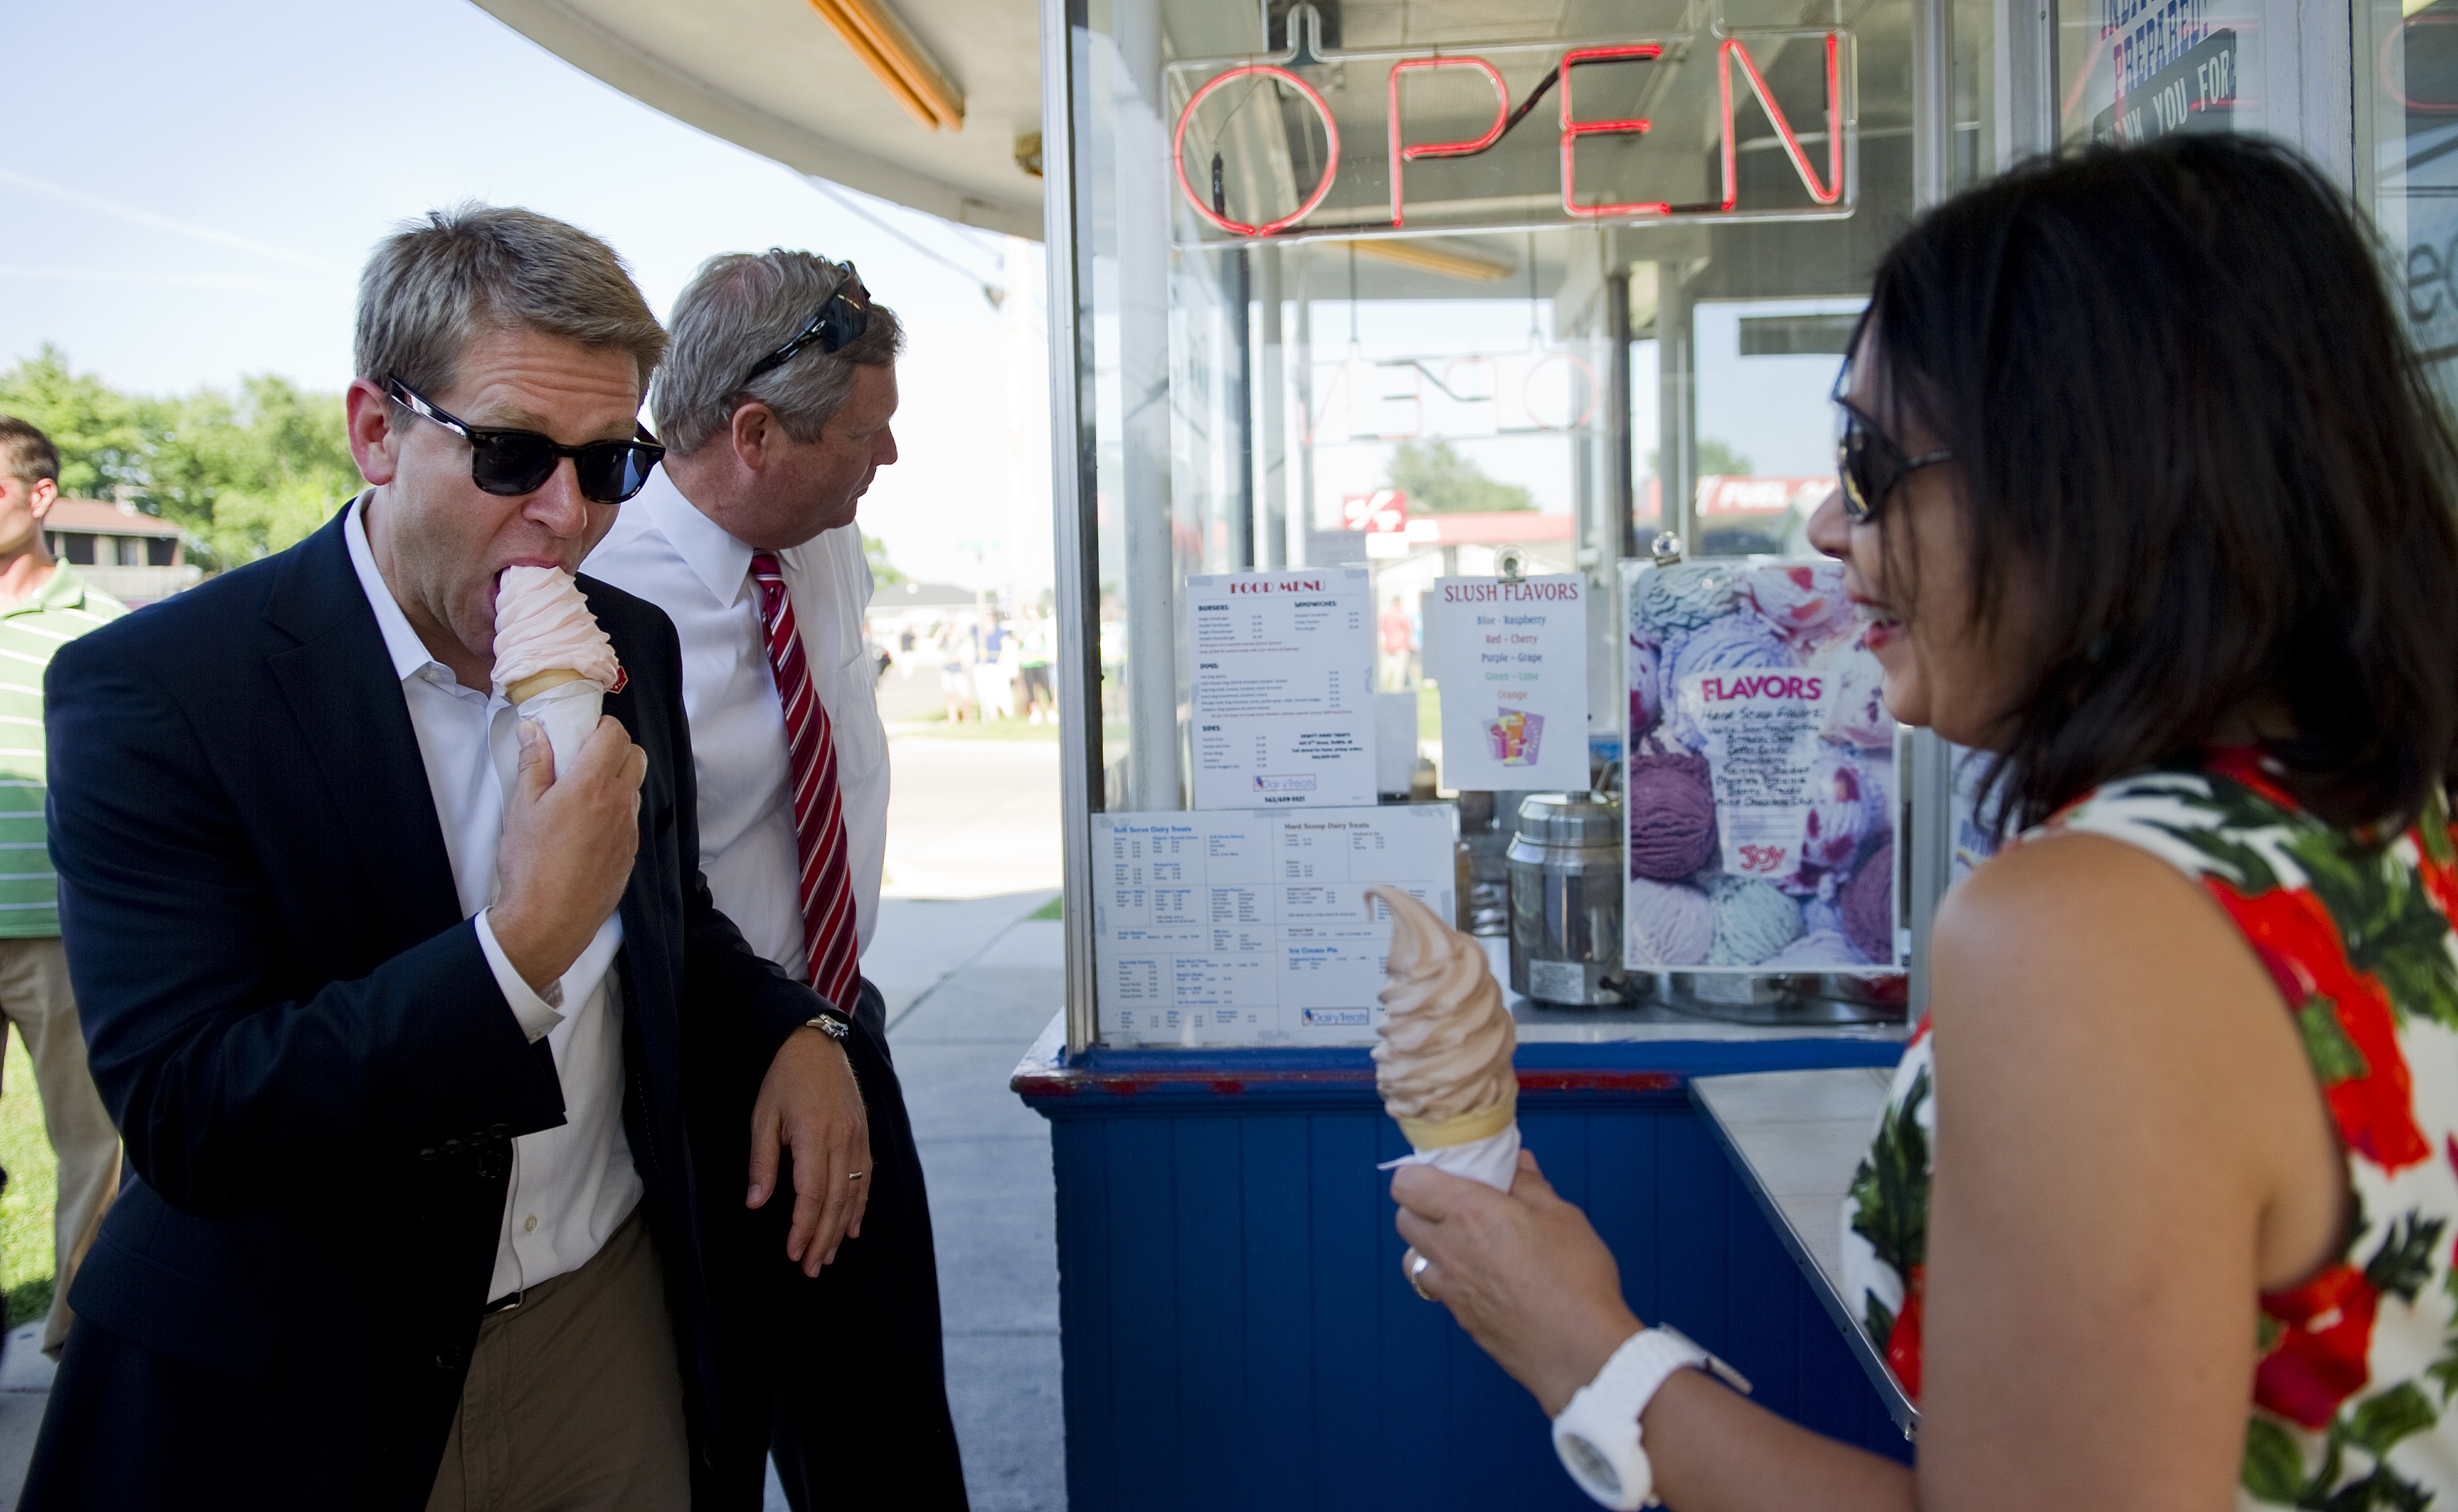 White House Press Secretary Jay Carney (L), US Agriculture Secretary Tom Vilsack (C) and Deputy White House chief of Staff Nancy DeParle (R) get ice cream cones as US President Barack Obama visits DeWitt Dairy Treats in Dewitt, Iowa, August 16, 2011.